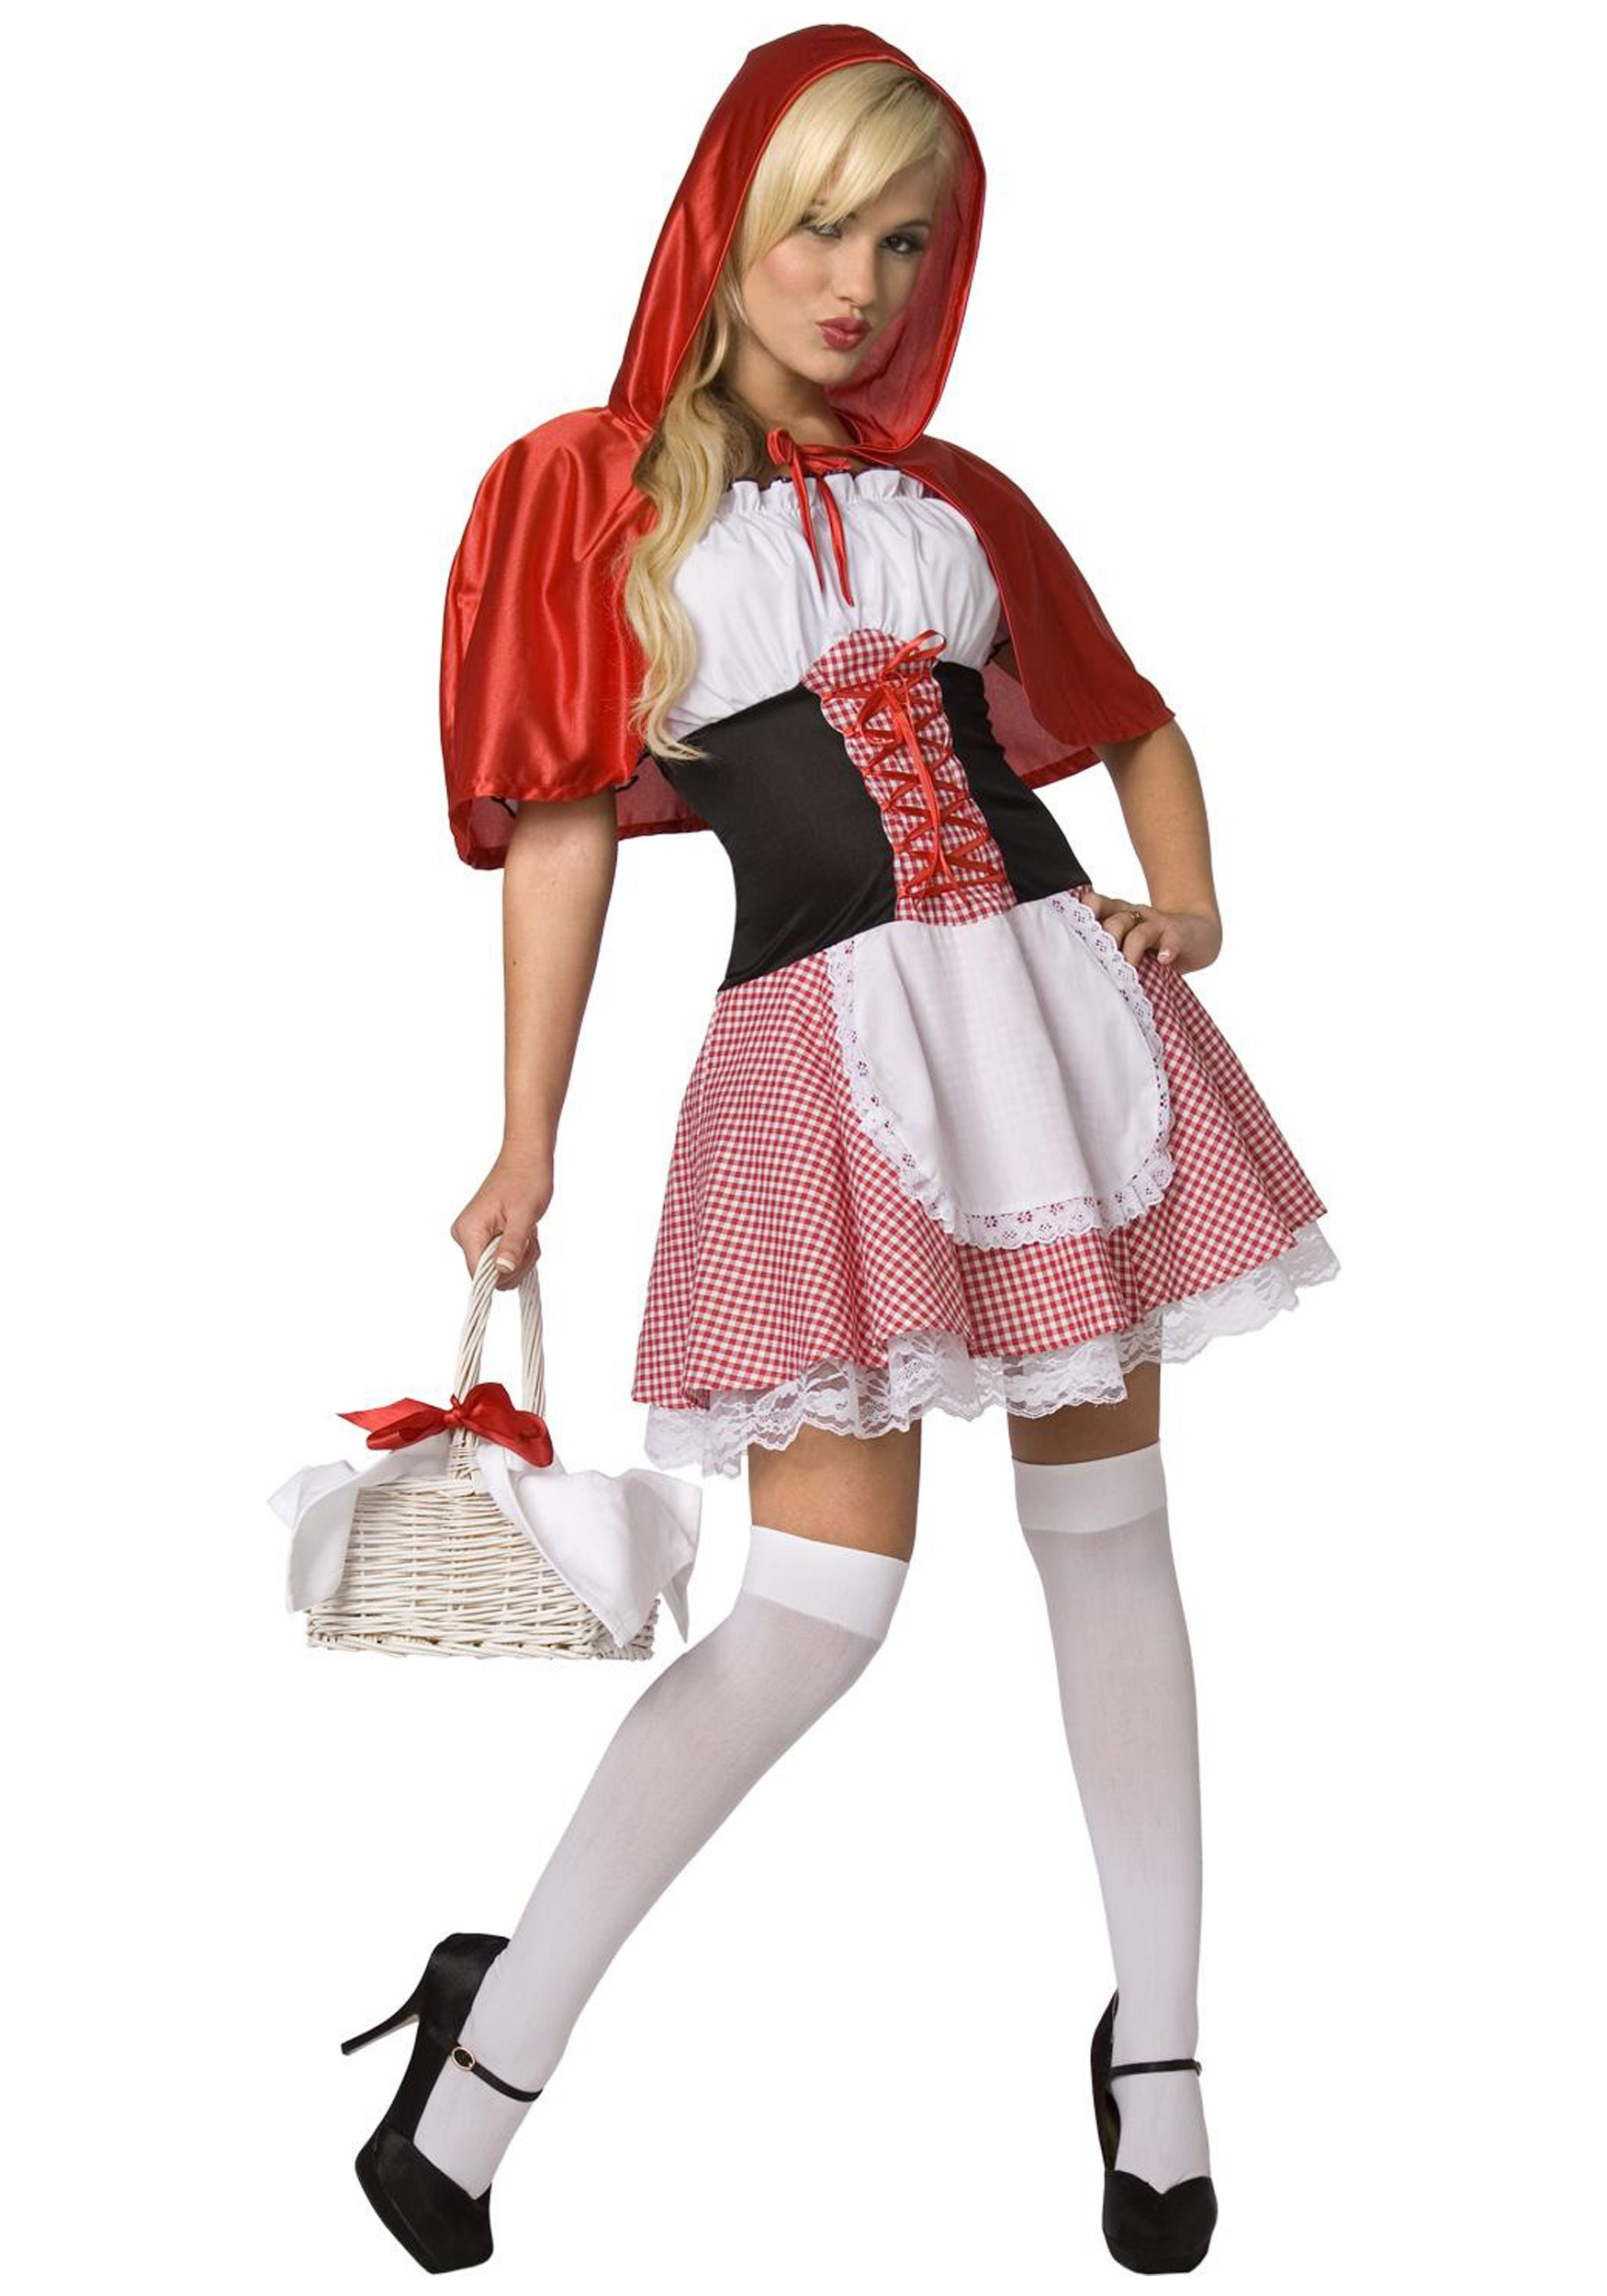 Sexy Red Riding Hood Costume | Storybook Character Costume